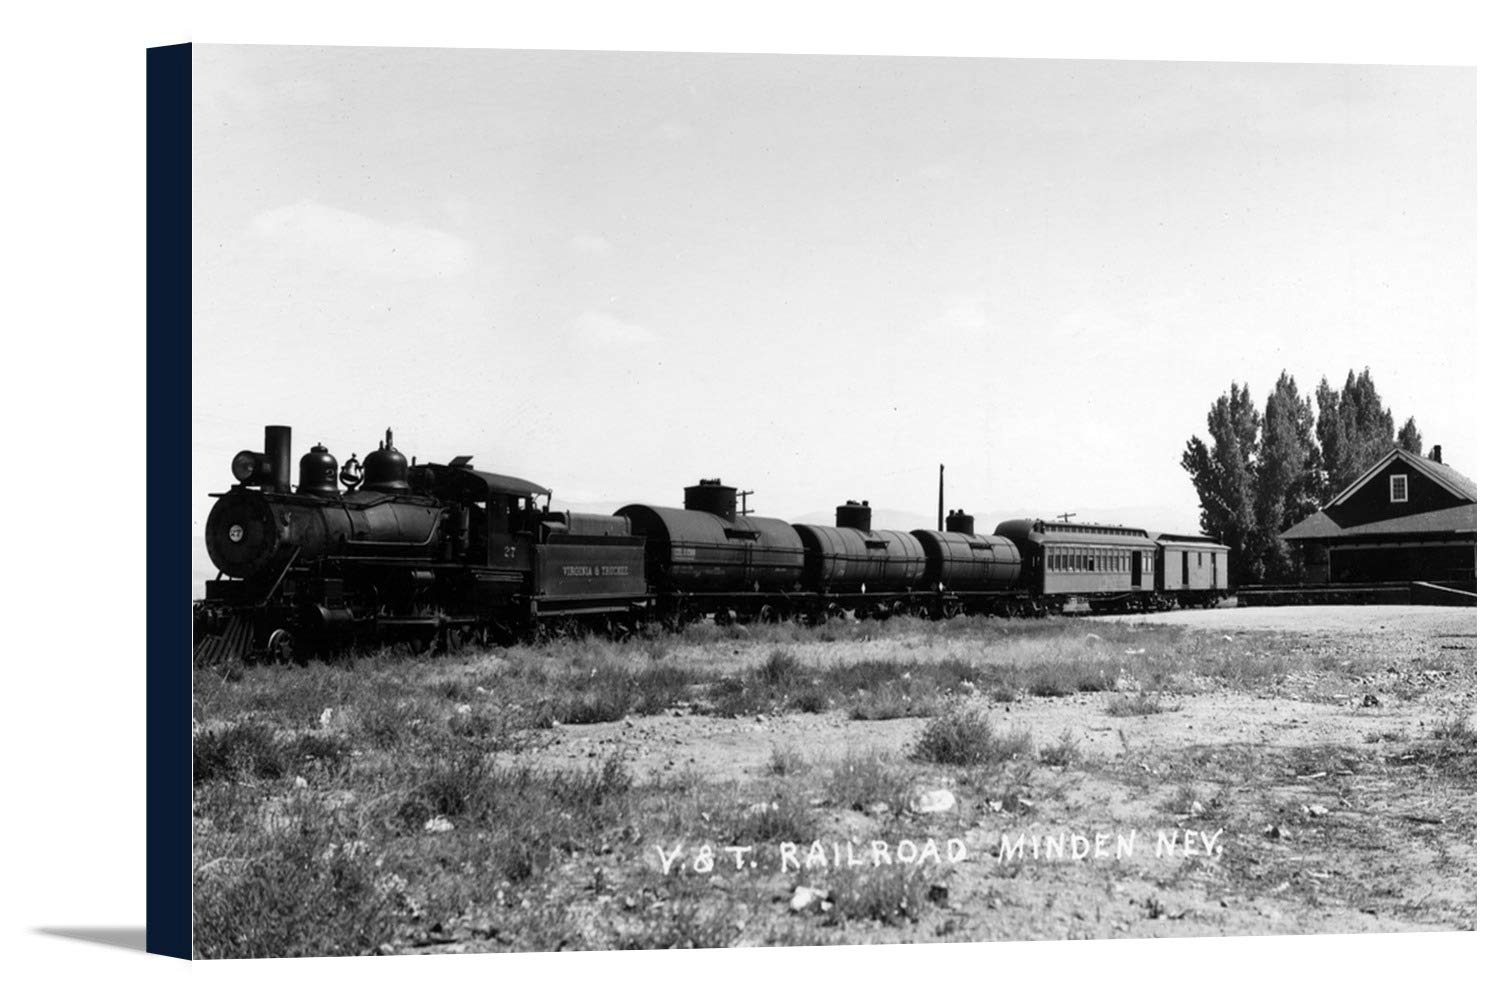 Minden、ネバダ州 – View of the Virginia and Truckee Railroad Train 36 x 22 1/4 Gallery Canvas LANT-3P-SC-10771-24x36 B018C2C9R4  36 x 22 1/4 Gallery Canvas